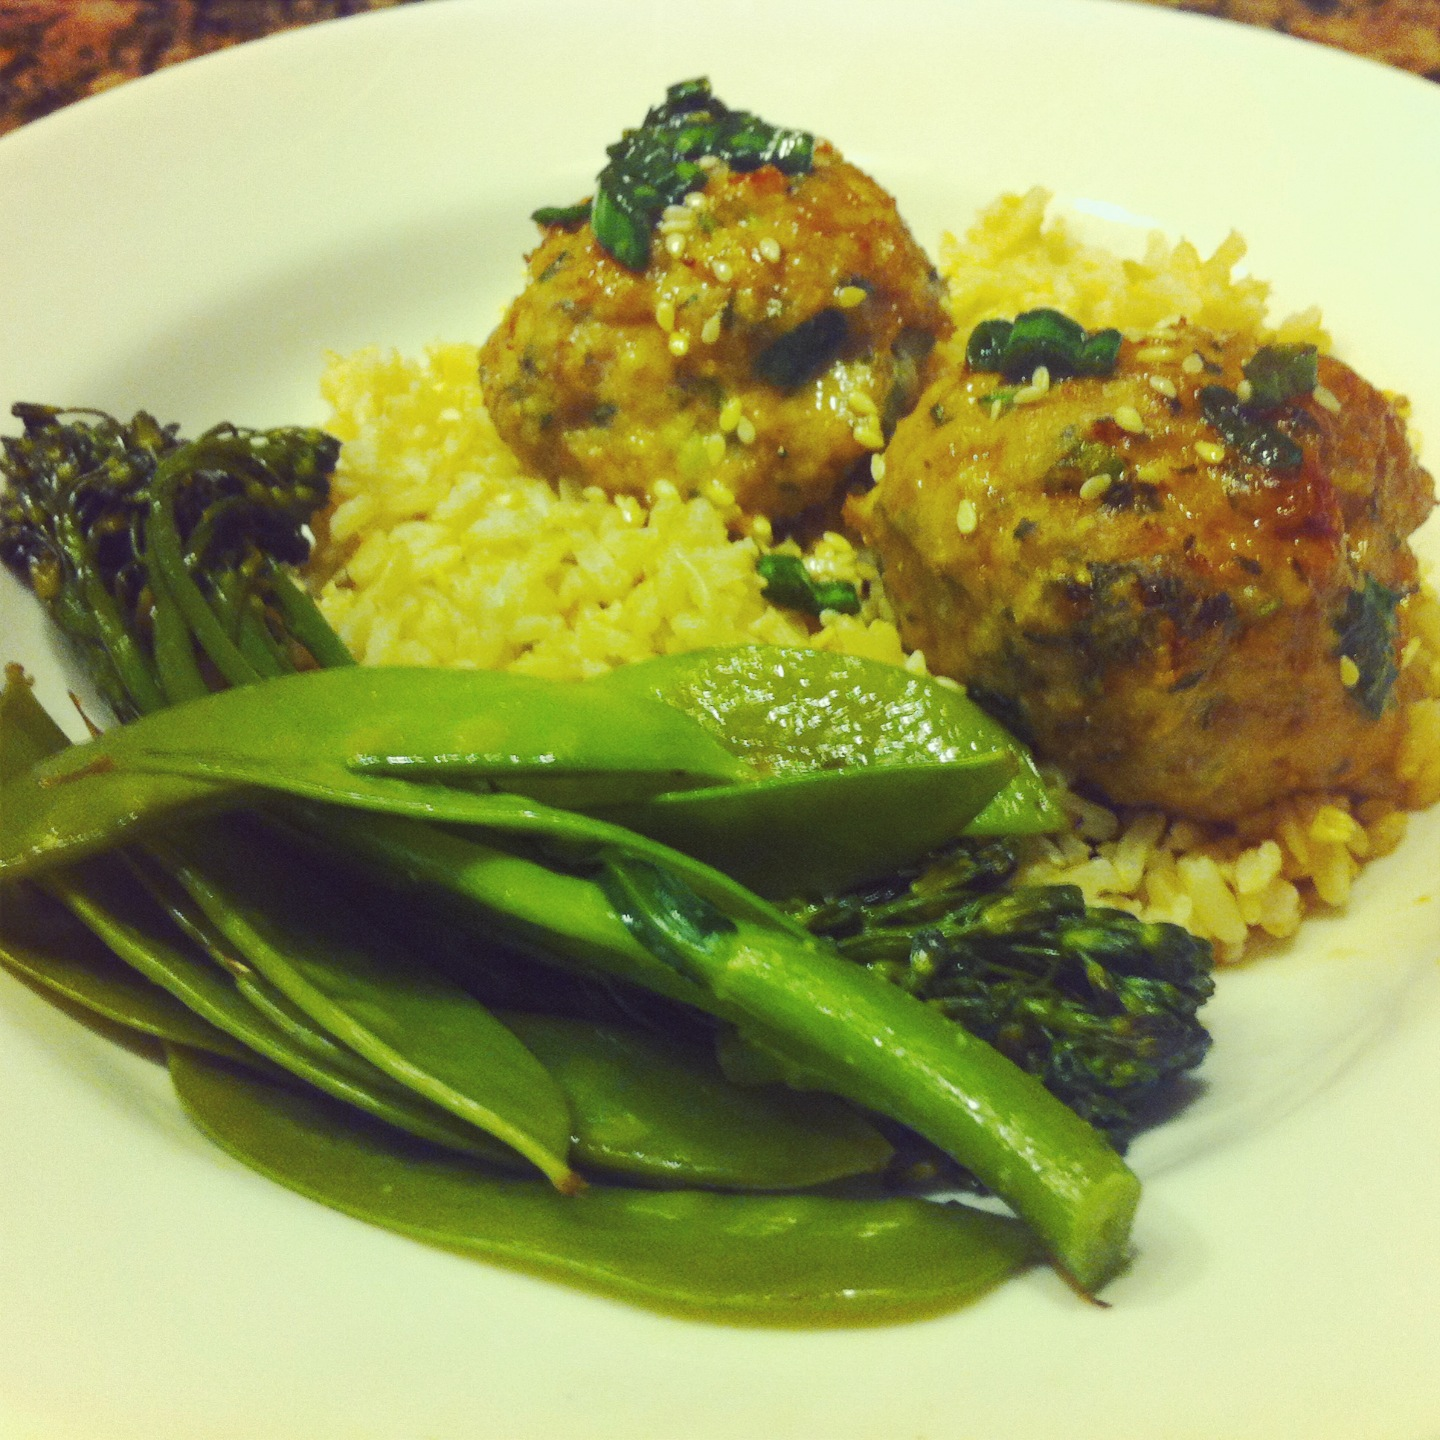 ... : Skinny Asian Turkey Meatballs With Lime Sesame Dipping Sauce